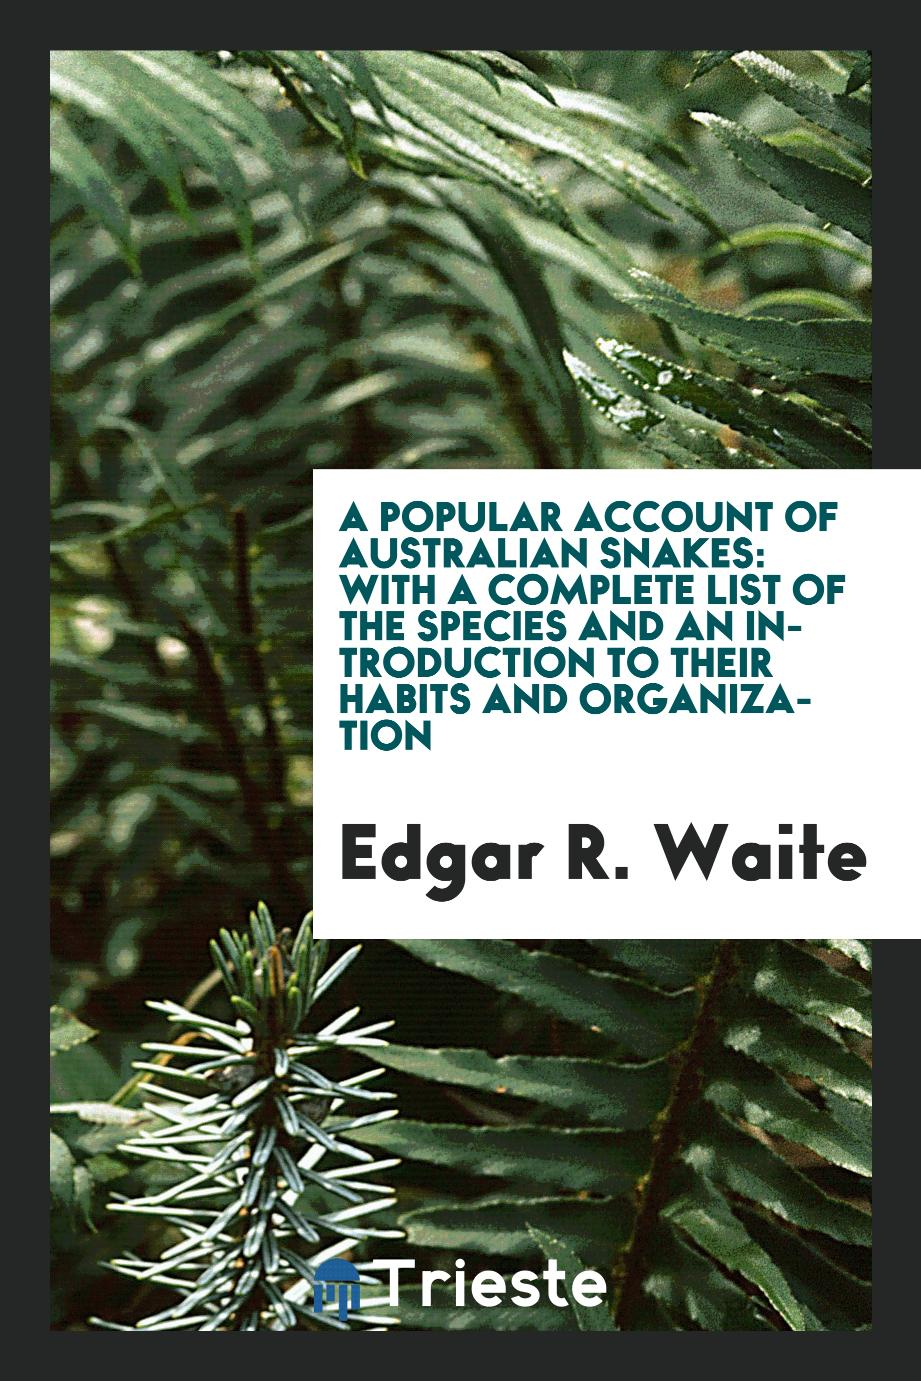 A popular account of Australian snakes: with a complete list of the species and an introduction to their habits and organization